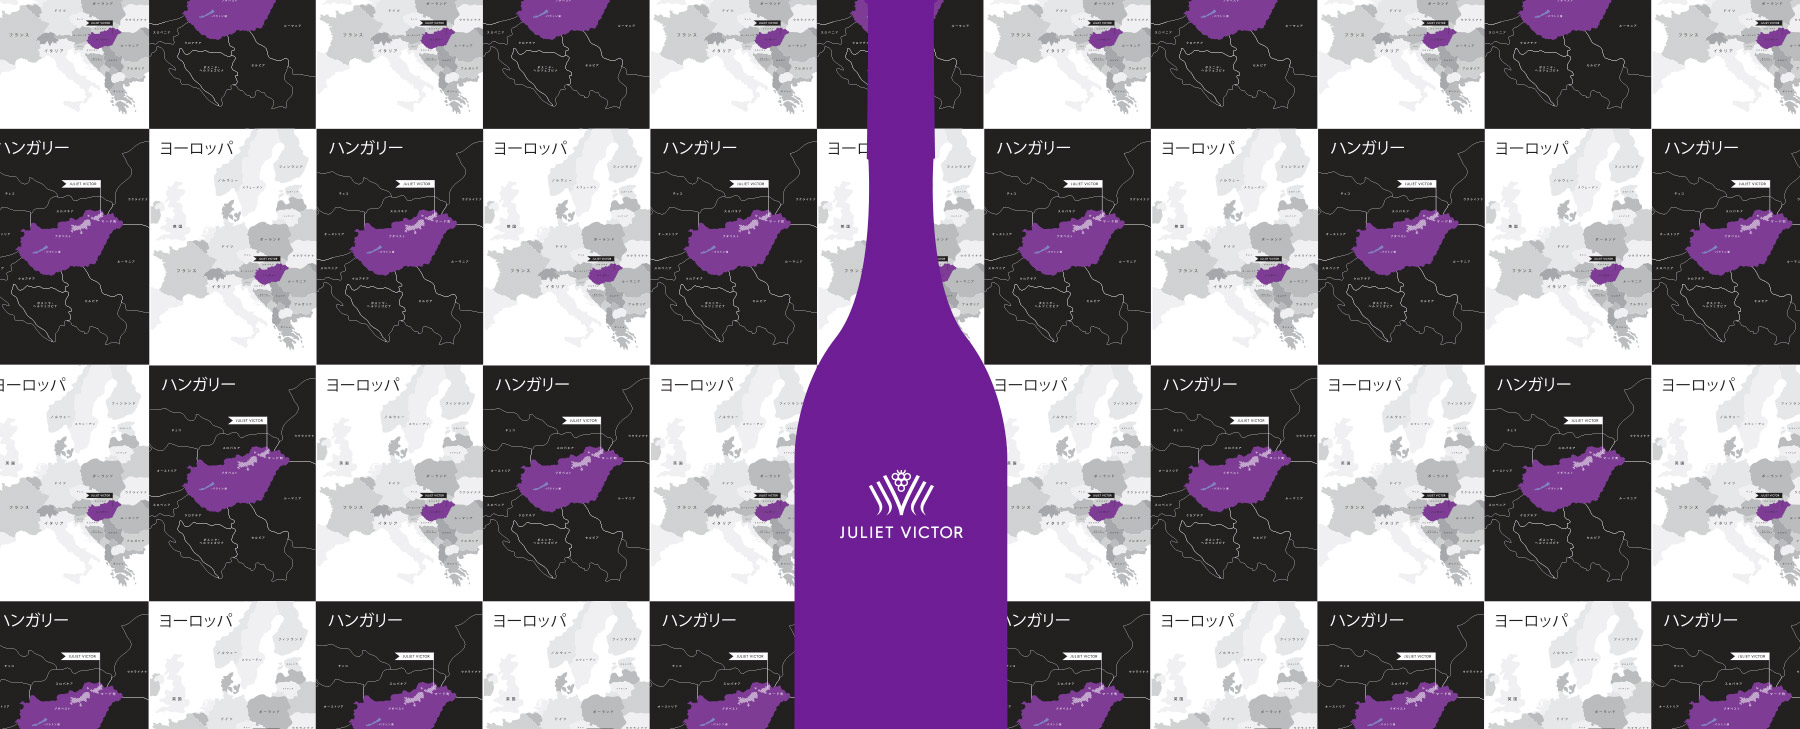 background contains map of Europe with Hungary highlighted in purple and foreground has silhouette of wine bottle with Juliet Victor branding